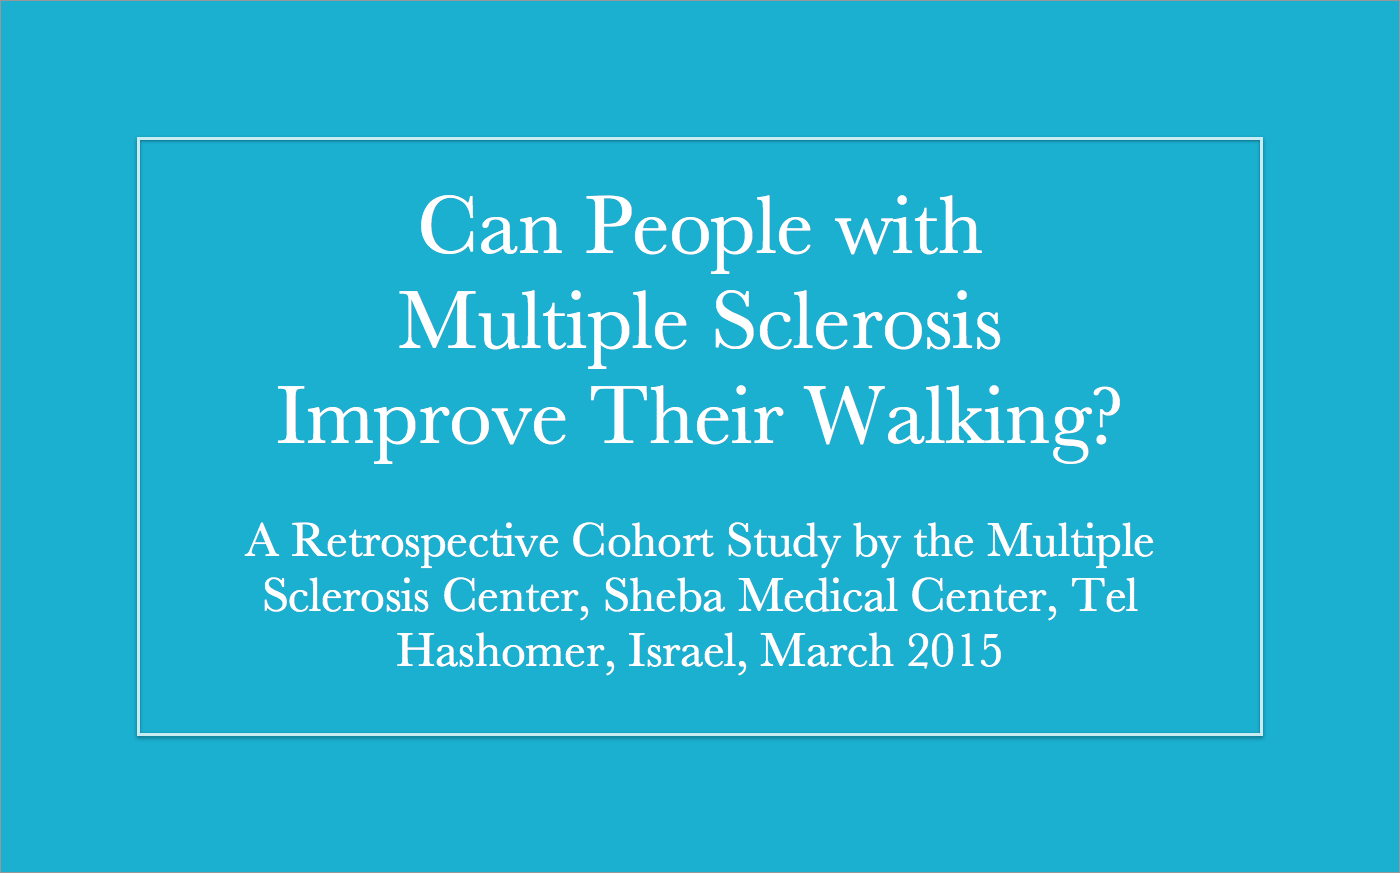 Can People With Multiple Sclerosis Improve Their Walking